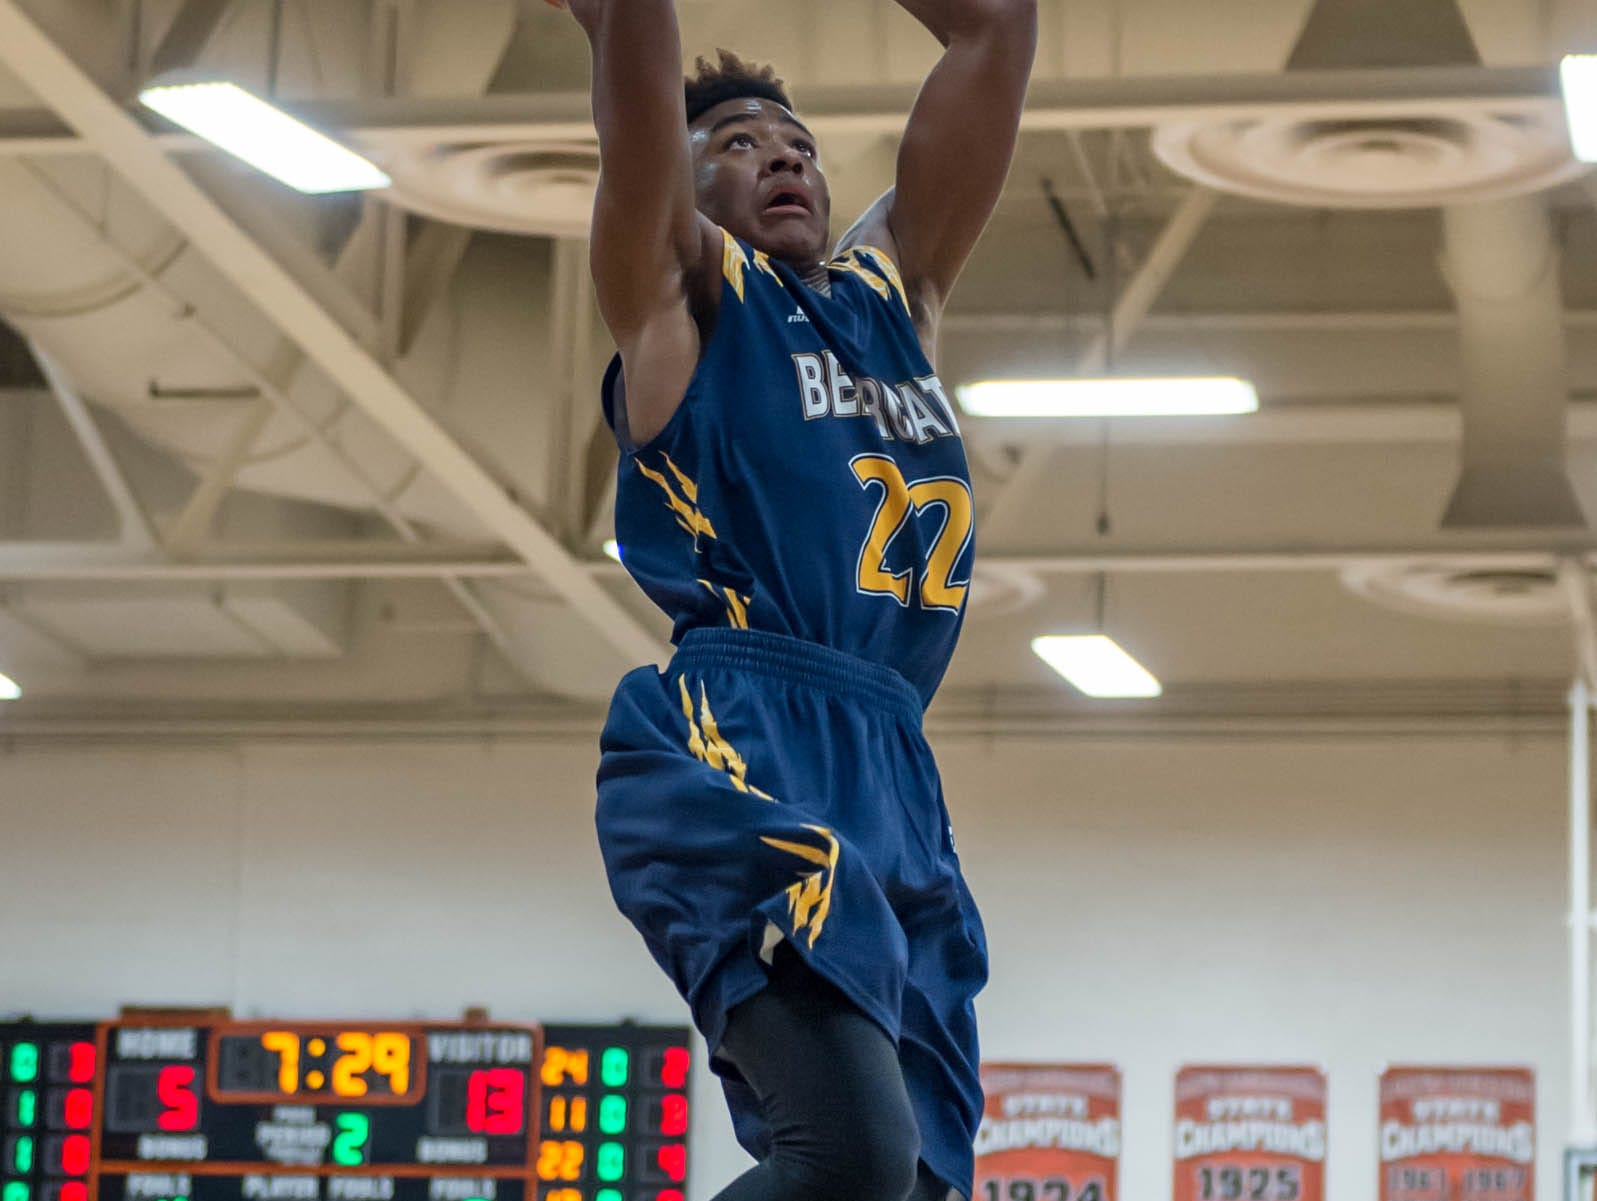 Battle Creek Central's Juan Airall gets the slam dunk against Lakeview Wednesday night.